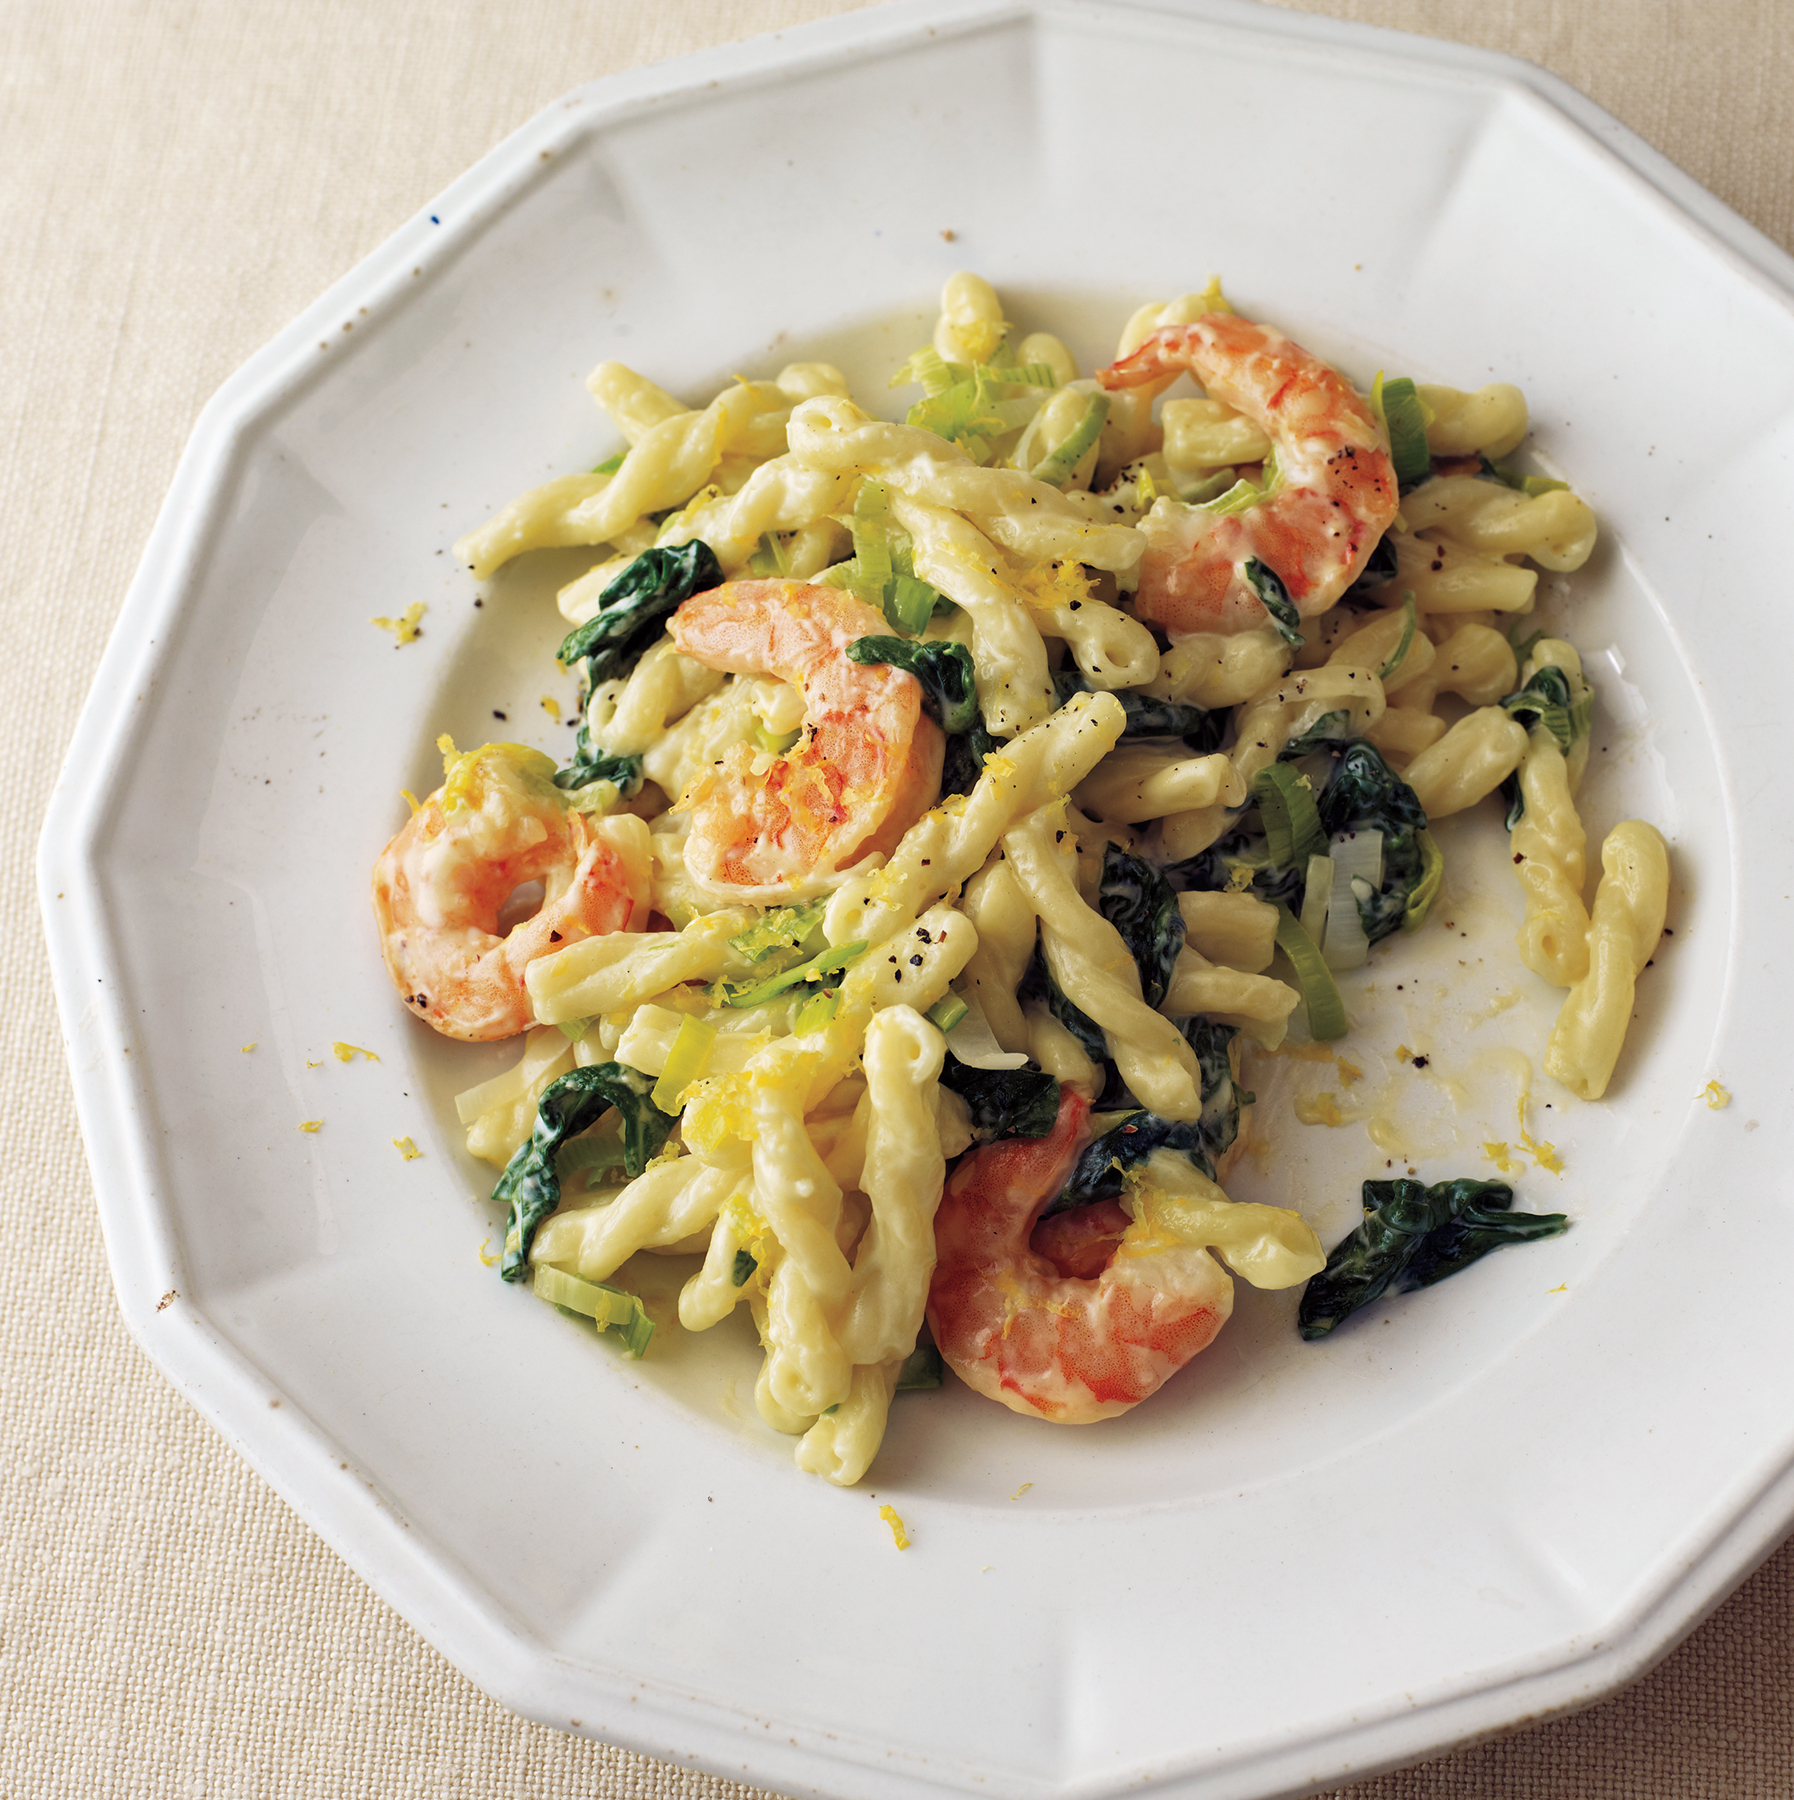 Forum on this topic: Fast and Flavorful Dinner Ideas, fast-and-flavorful-dinner-ideas/